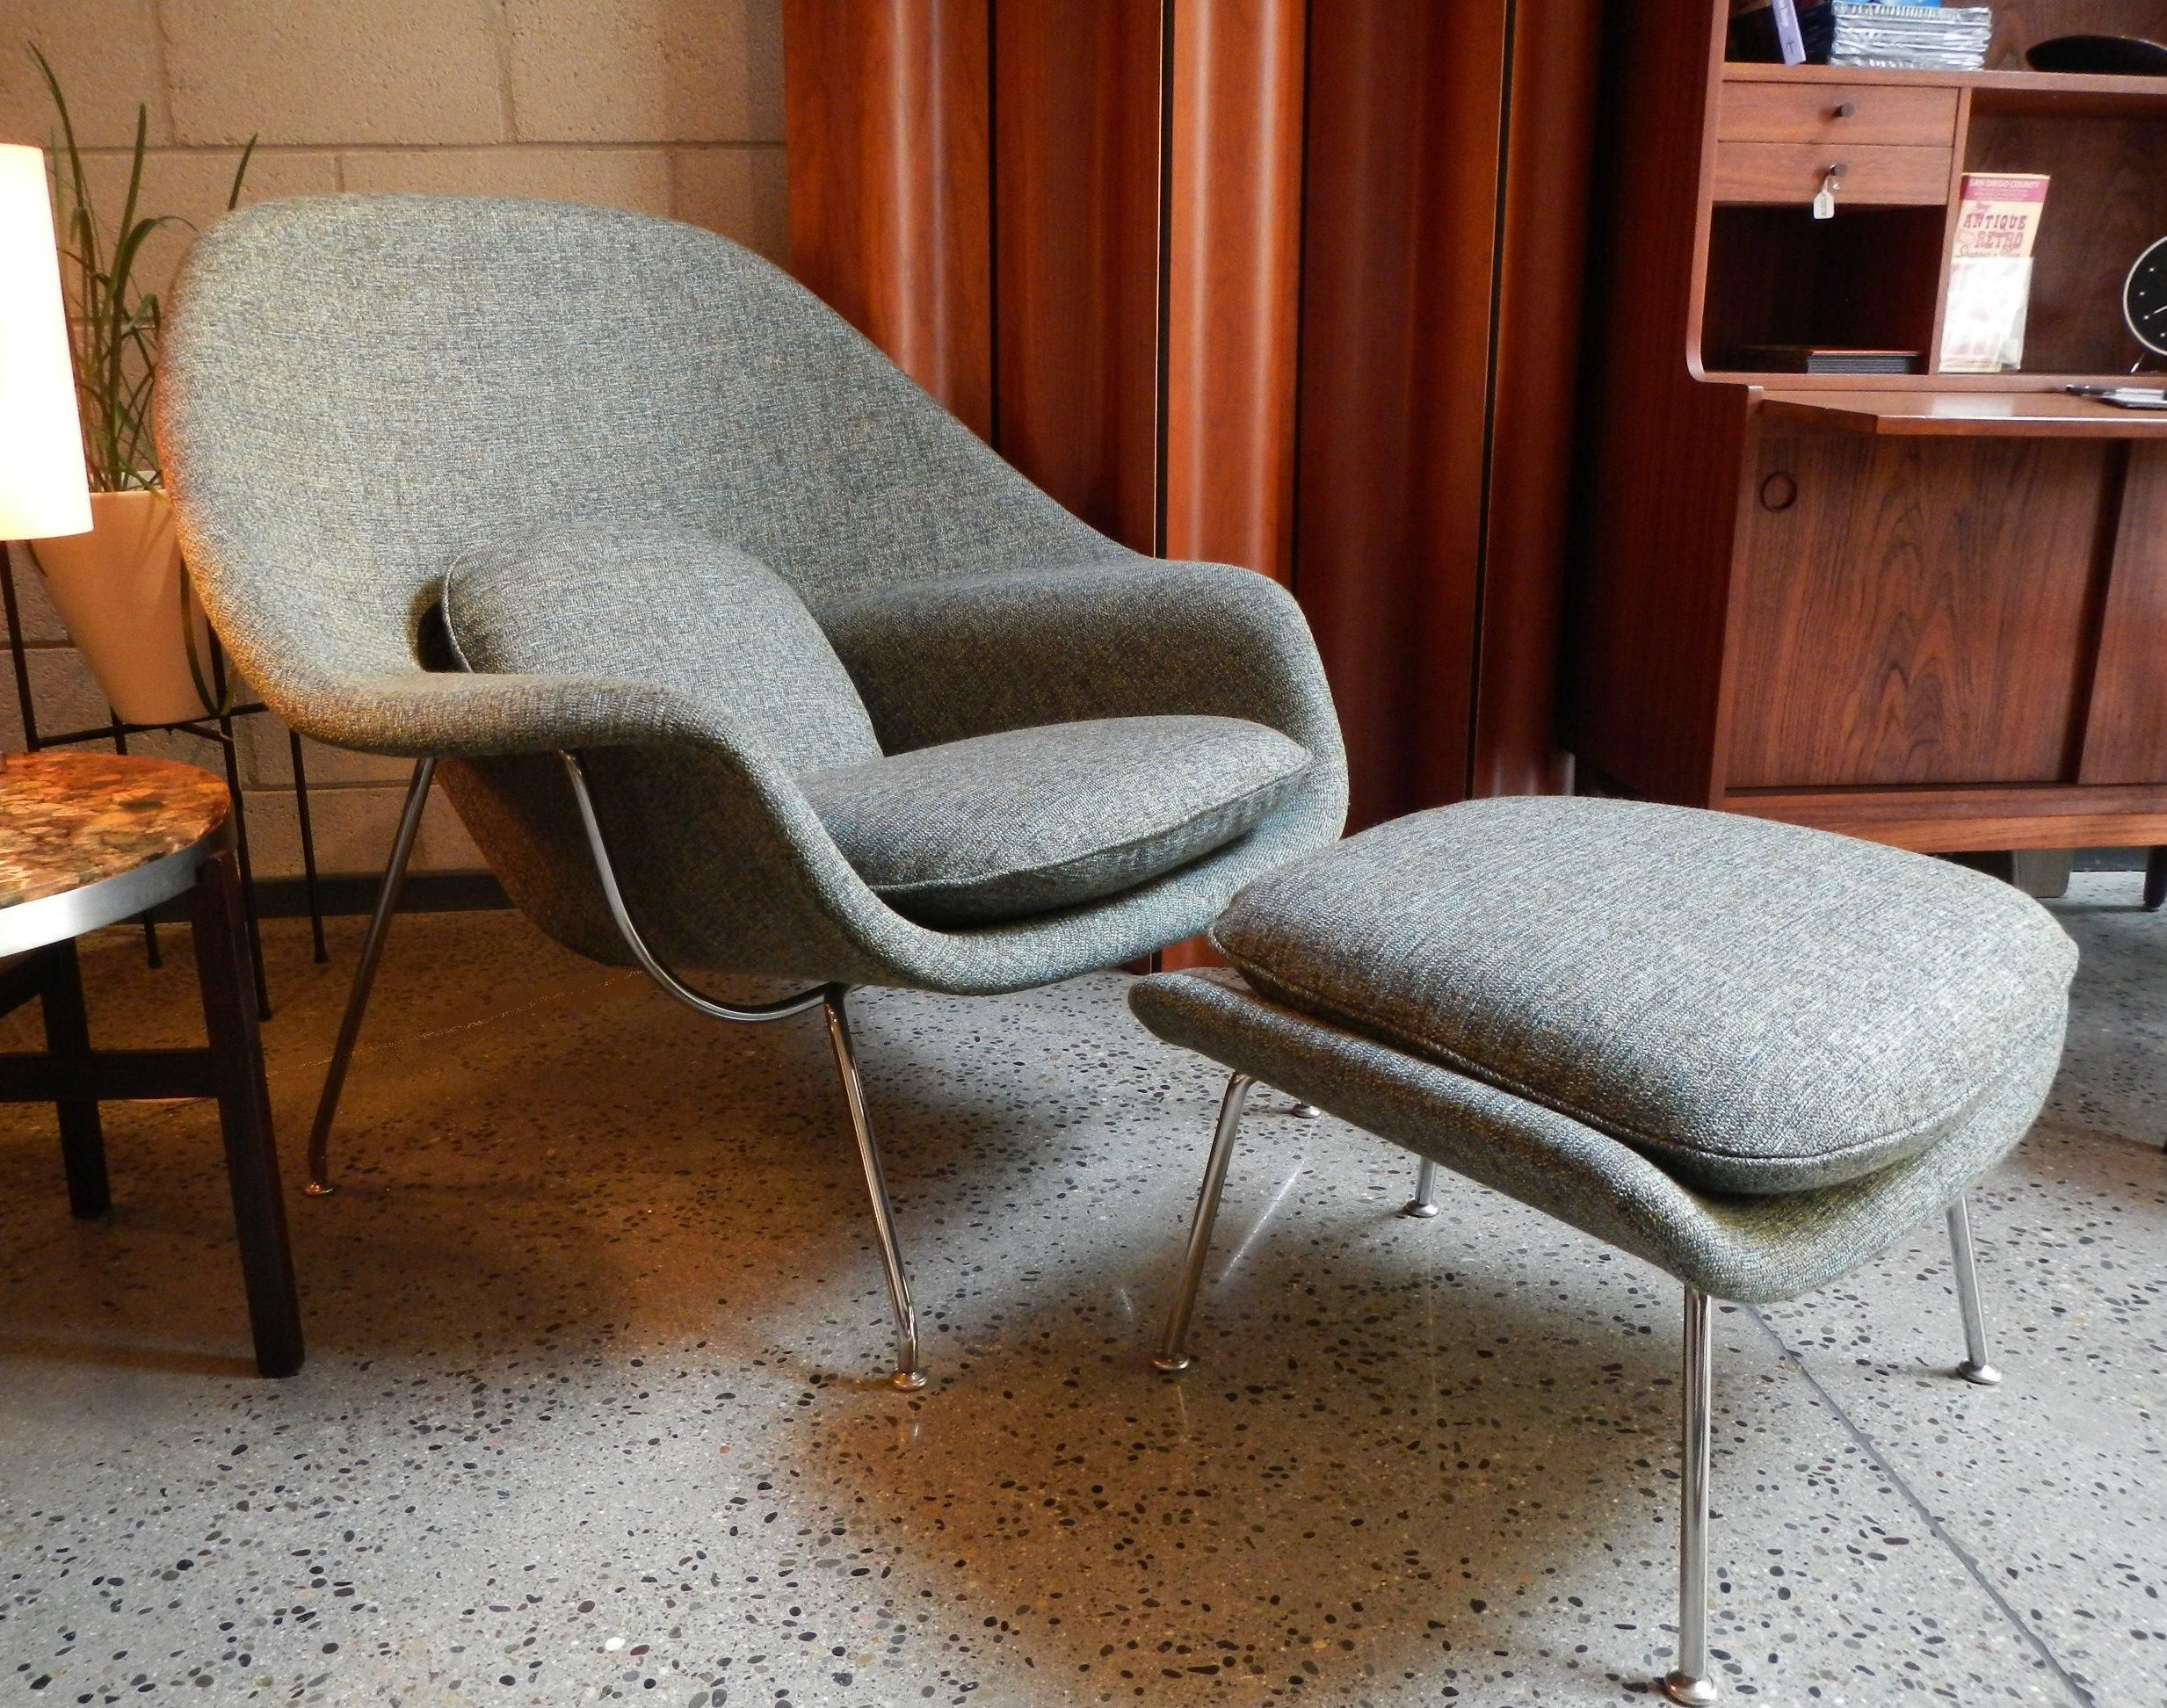 Womb Chair. EERO SAARINEN 1948. Eero Saarinen designed the groundbreaking Womb  Chair at Florence